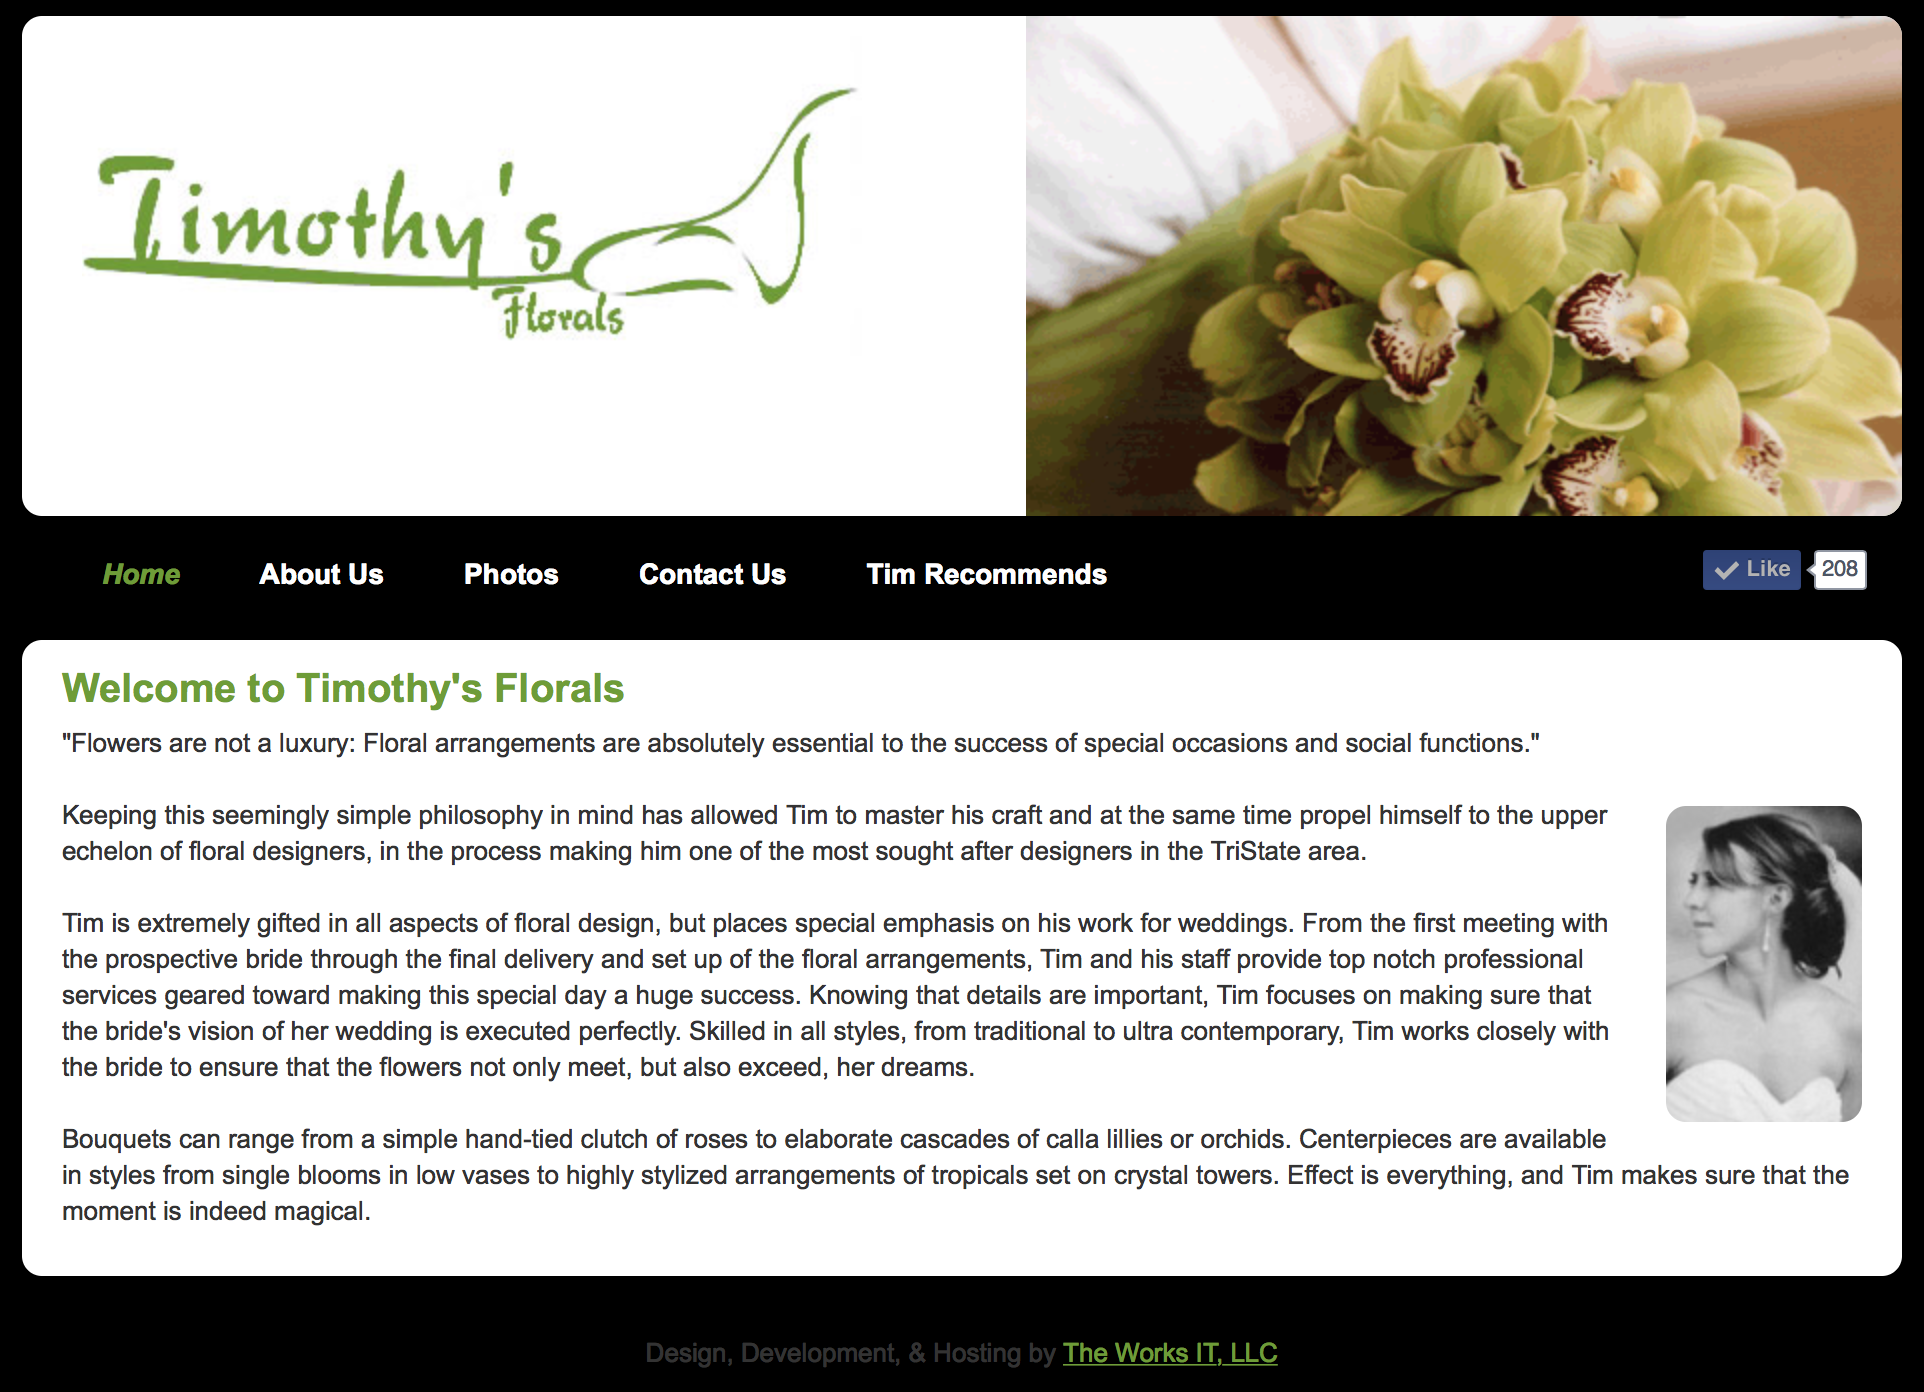 Timothy's Florals